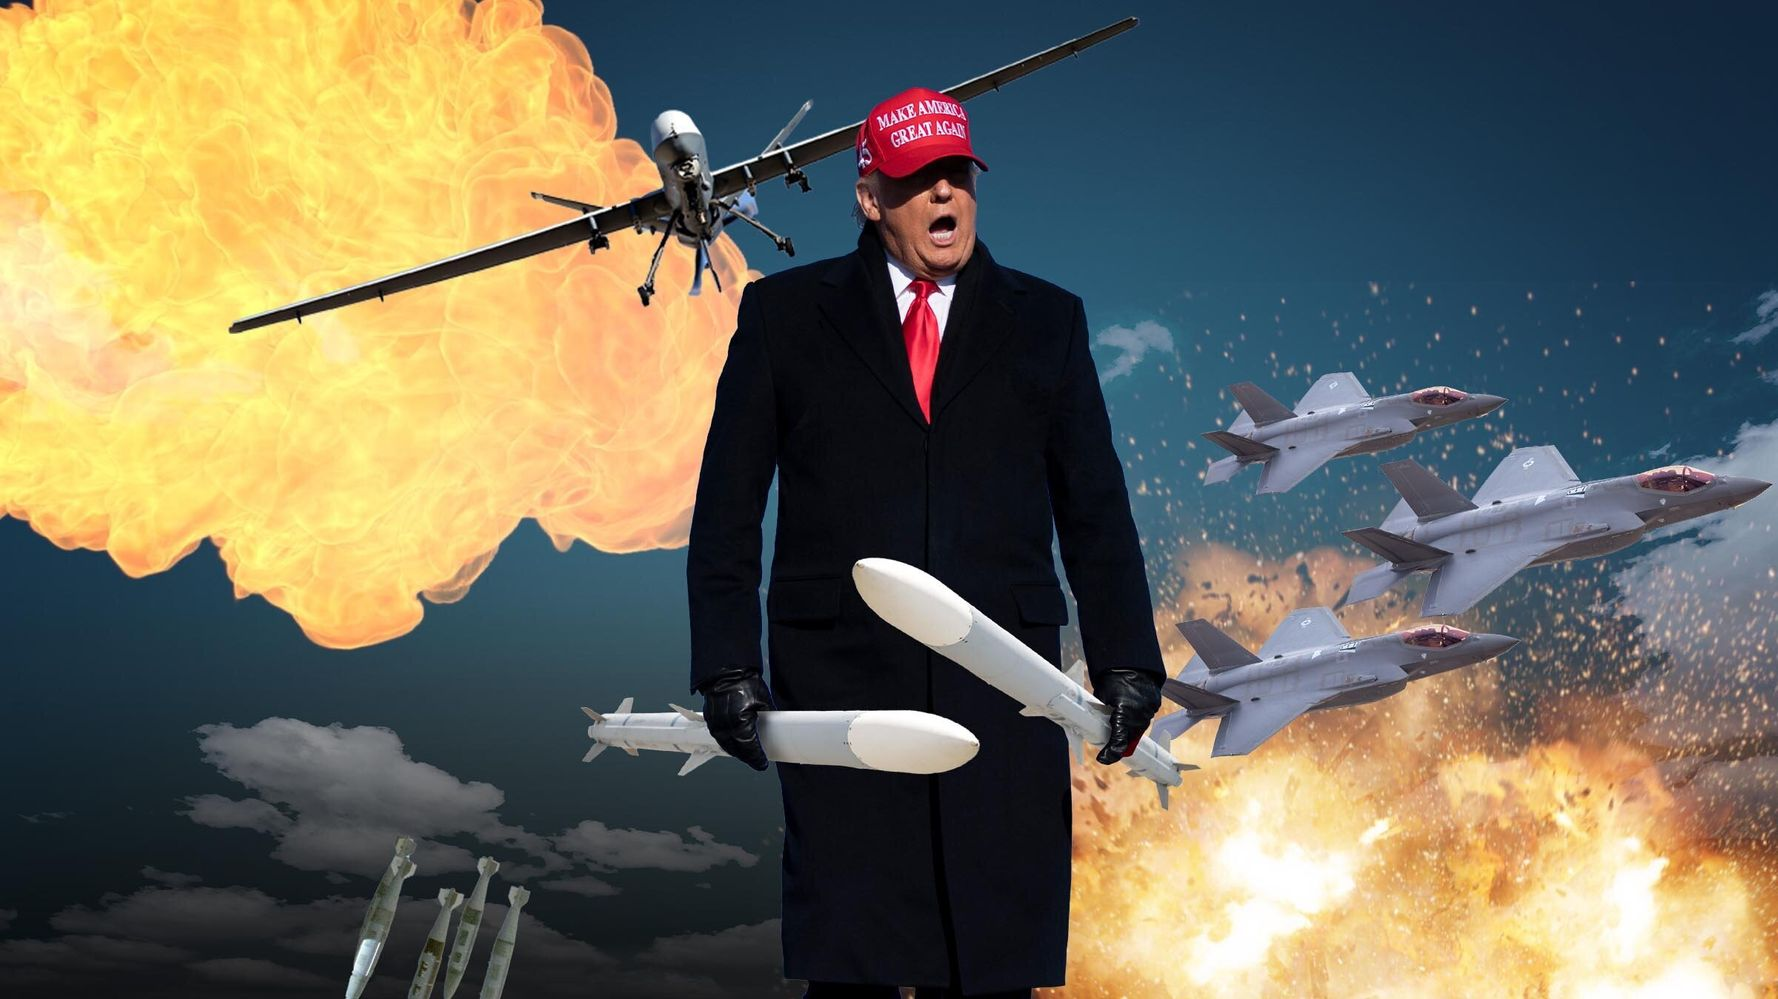 Trump Is Rushing Through His Biggest, Most Dangerous Arms Deal. Congress Could Stop It.